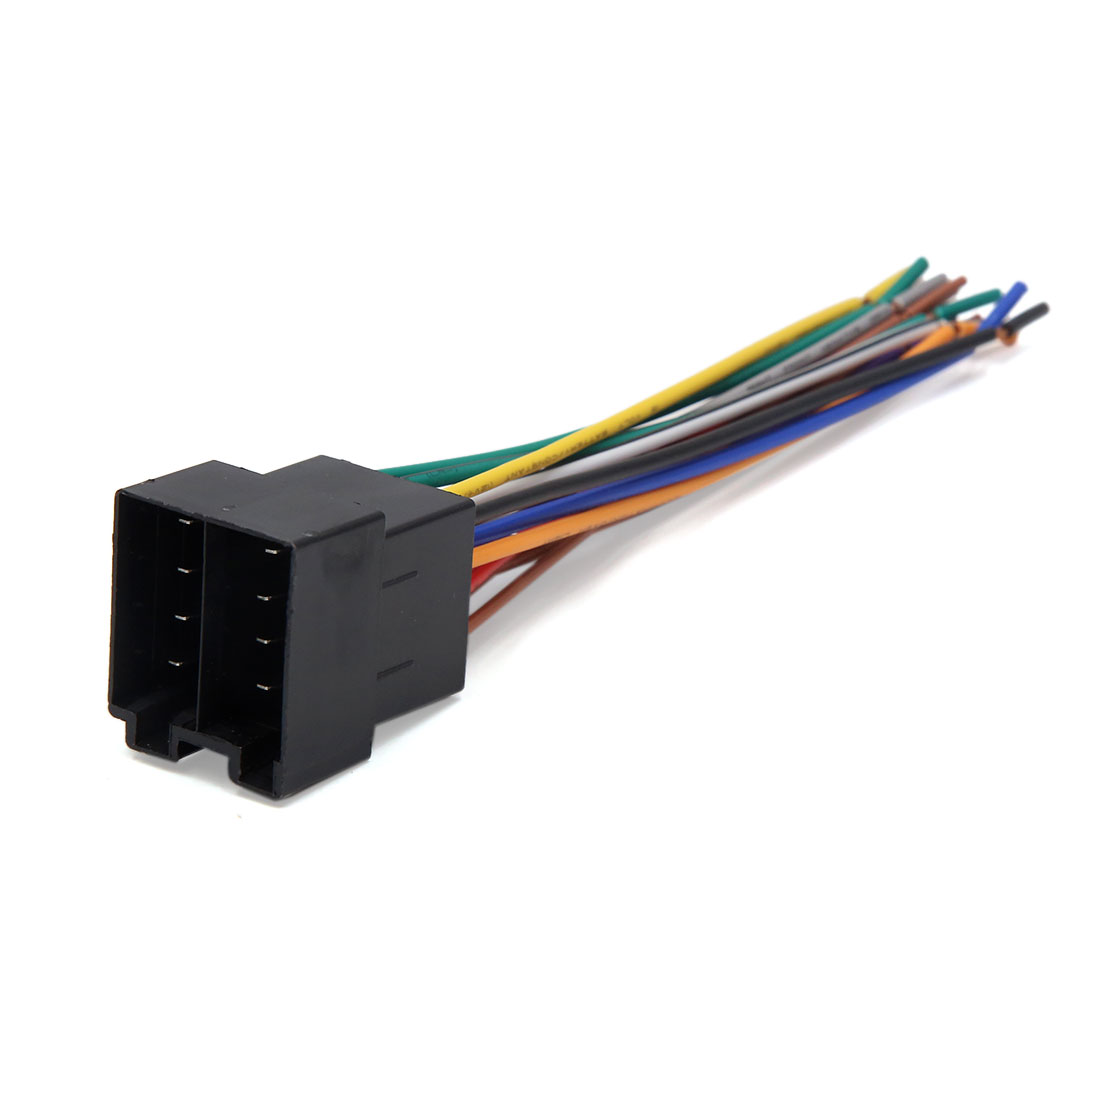 Car Stereo Wiring Harness Adapter Solutions Peugeot Female For 307 308 Citroen